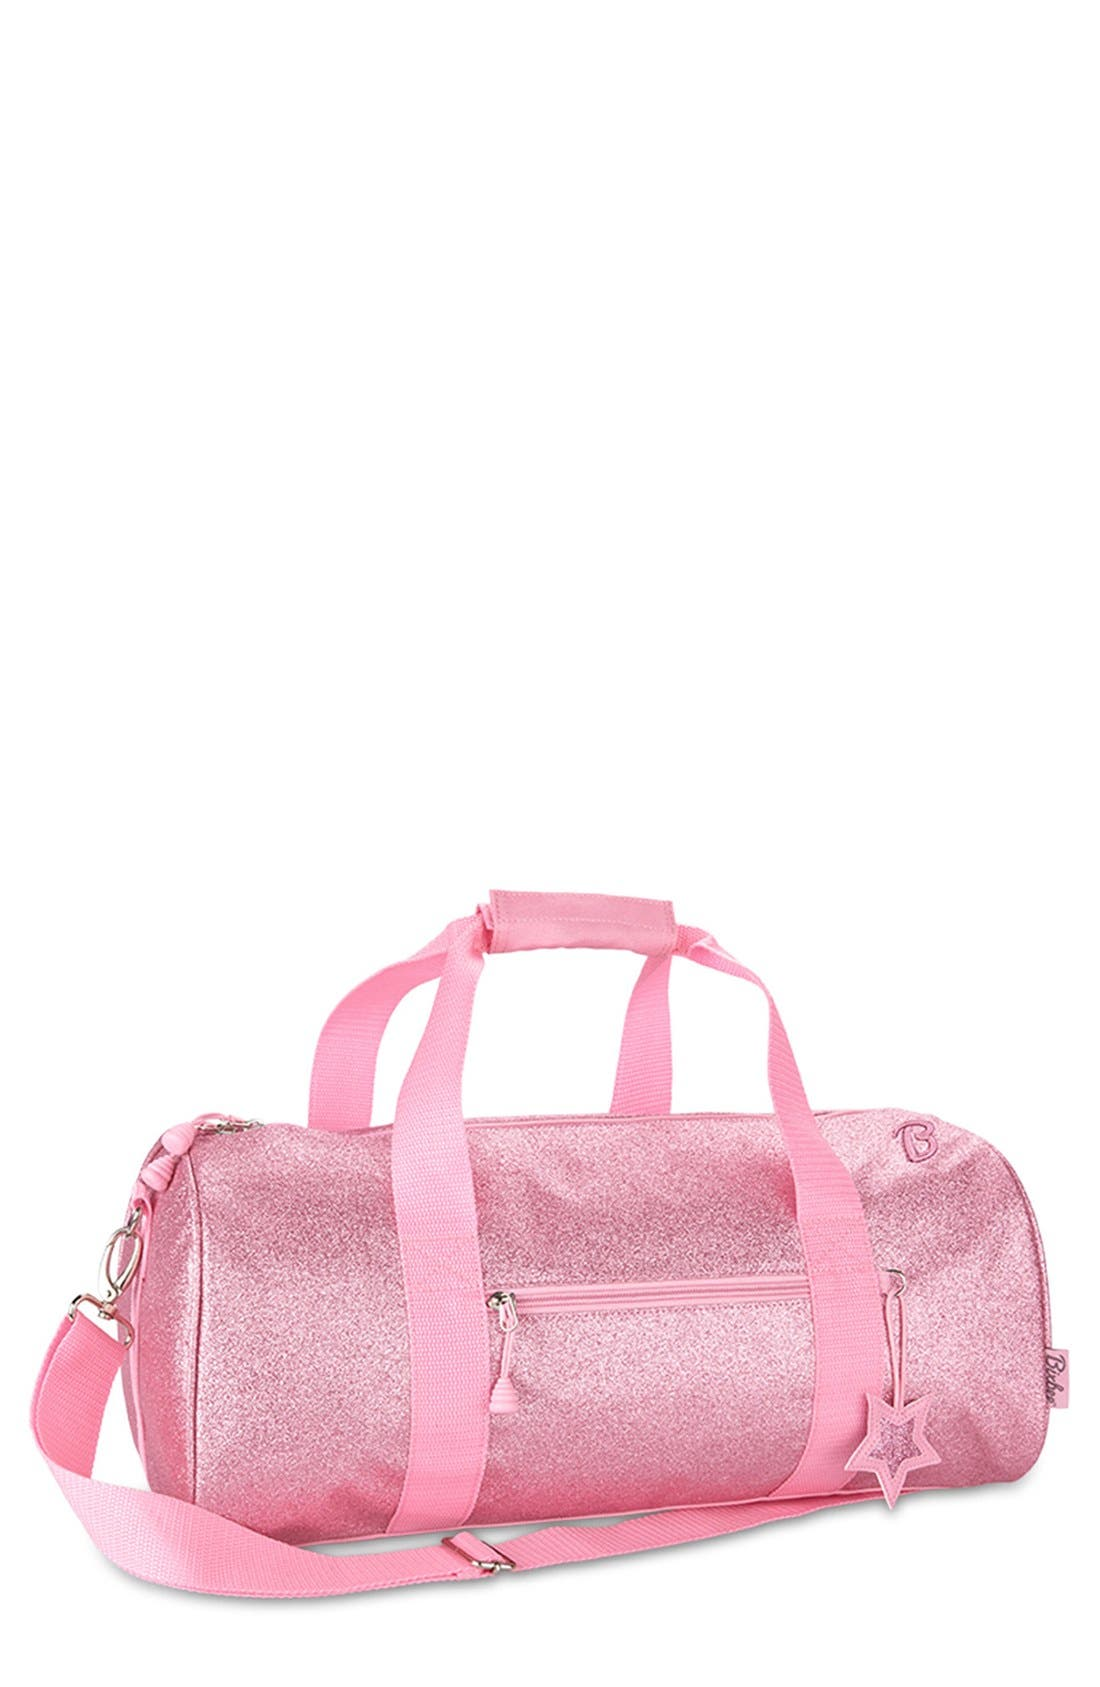 BIXBEE Large Sparkalicious Dance & Sports Duffel Bag